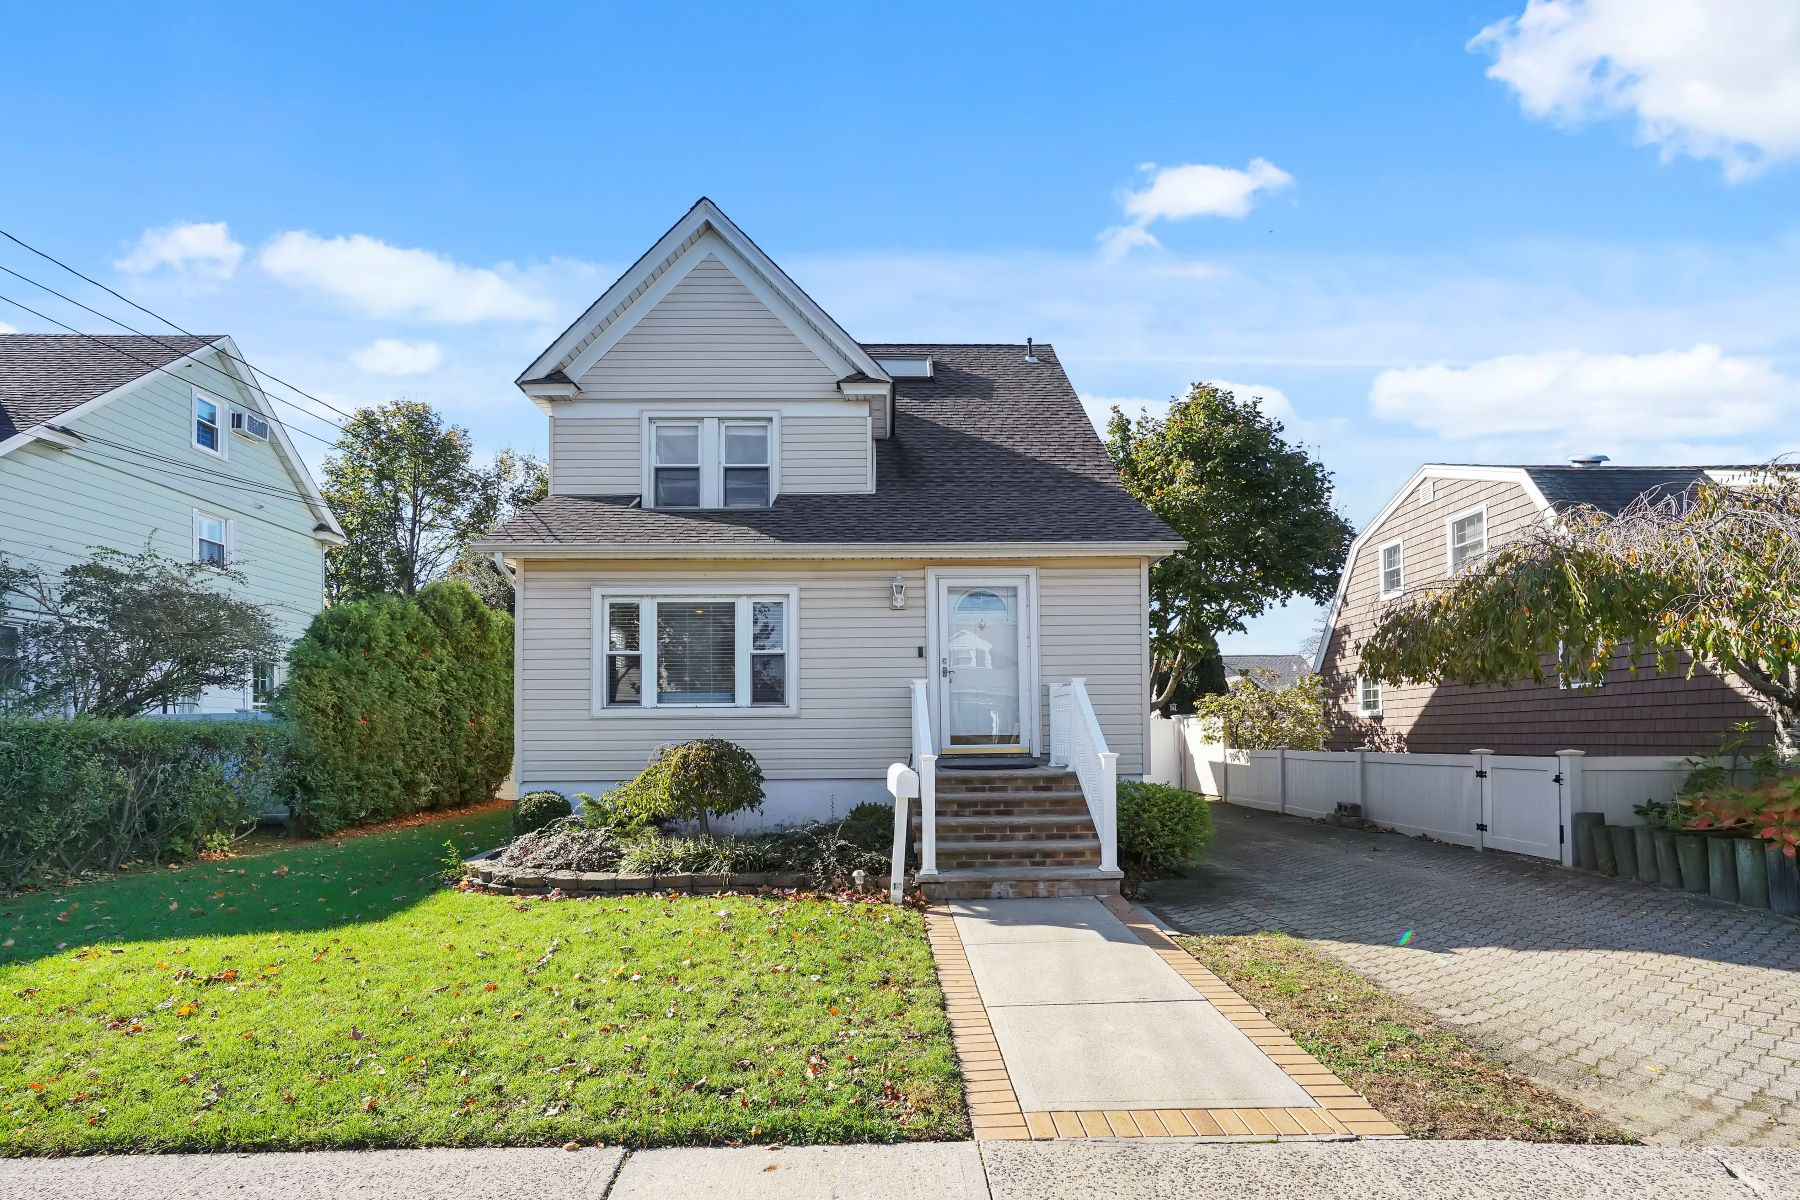 Single Family Homes for Active at 14 South Franklin Avenue Lynbrook, New York 11563 United States